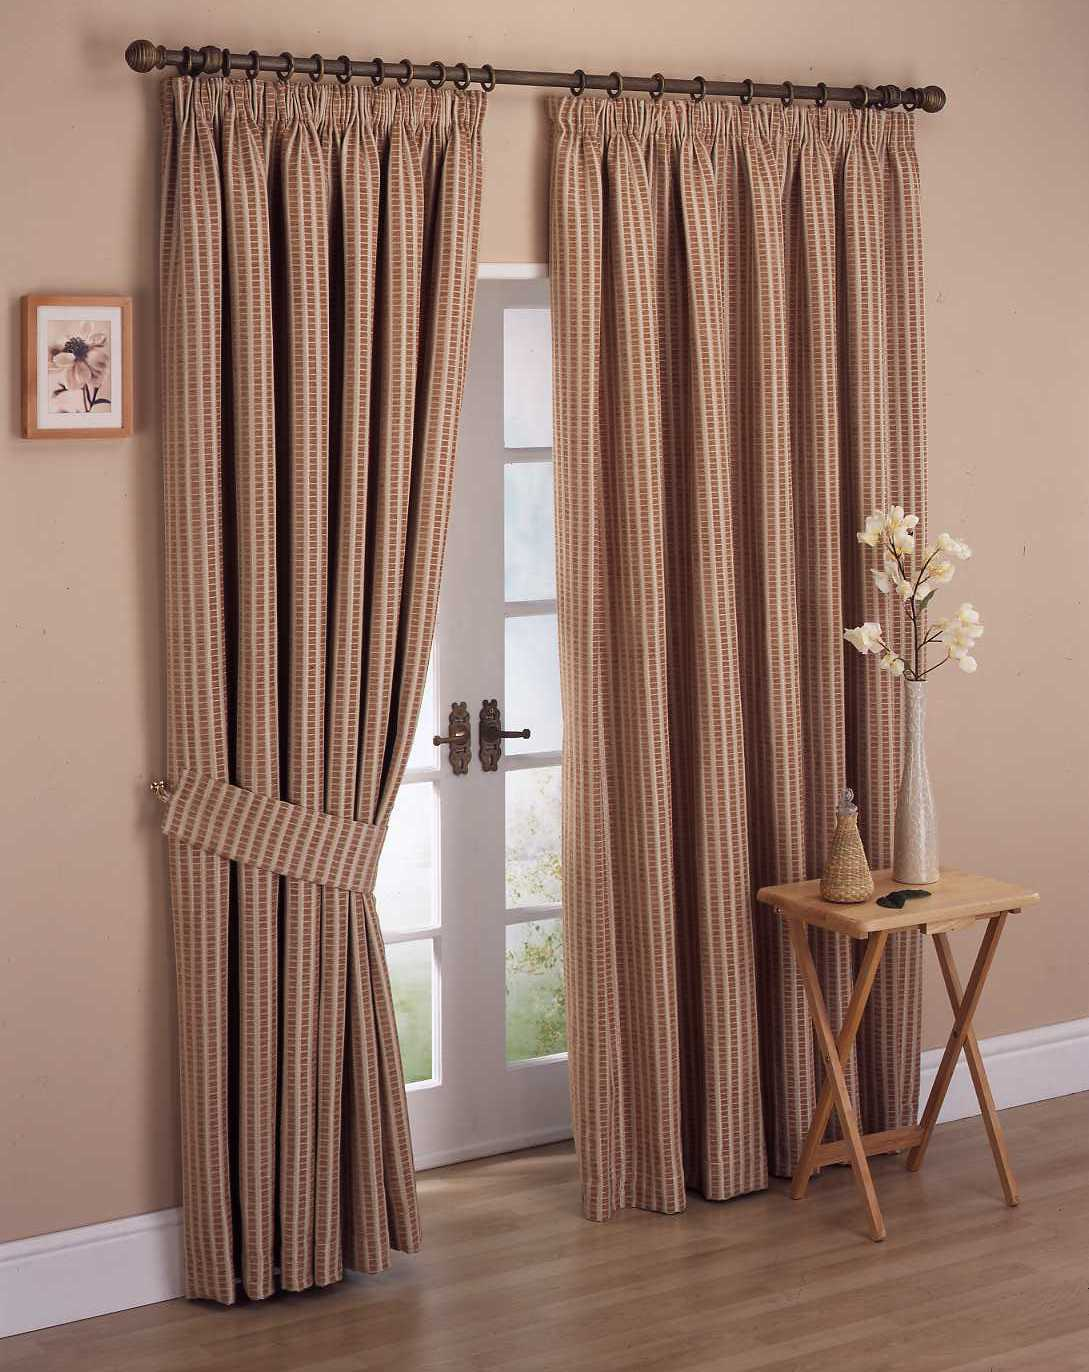 Top catalog of classic curtains designs 2013 for Bedroom curtain ideas